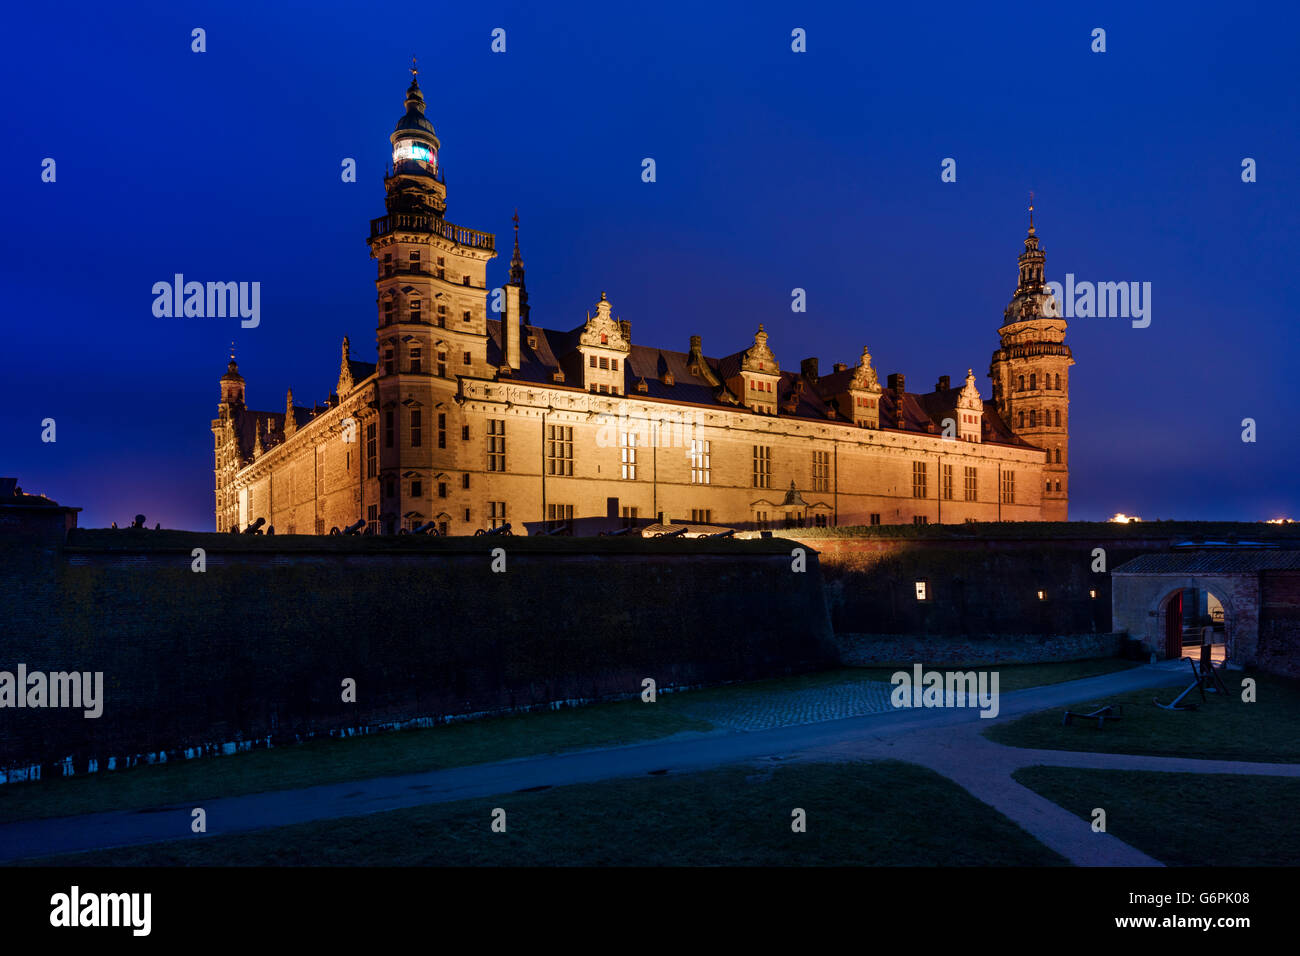 Kronborg Castle in Helsingor, Denmark seen at dusk. The Castle has been added to UNESCO's World Heritage Sites - Stock Image